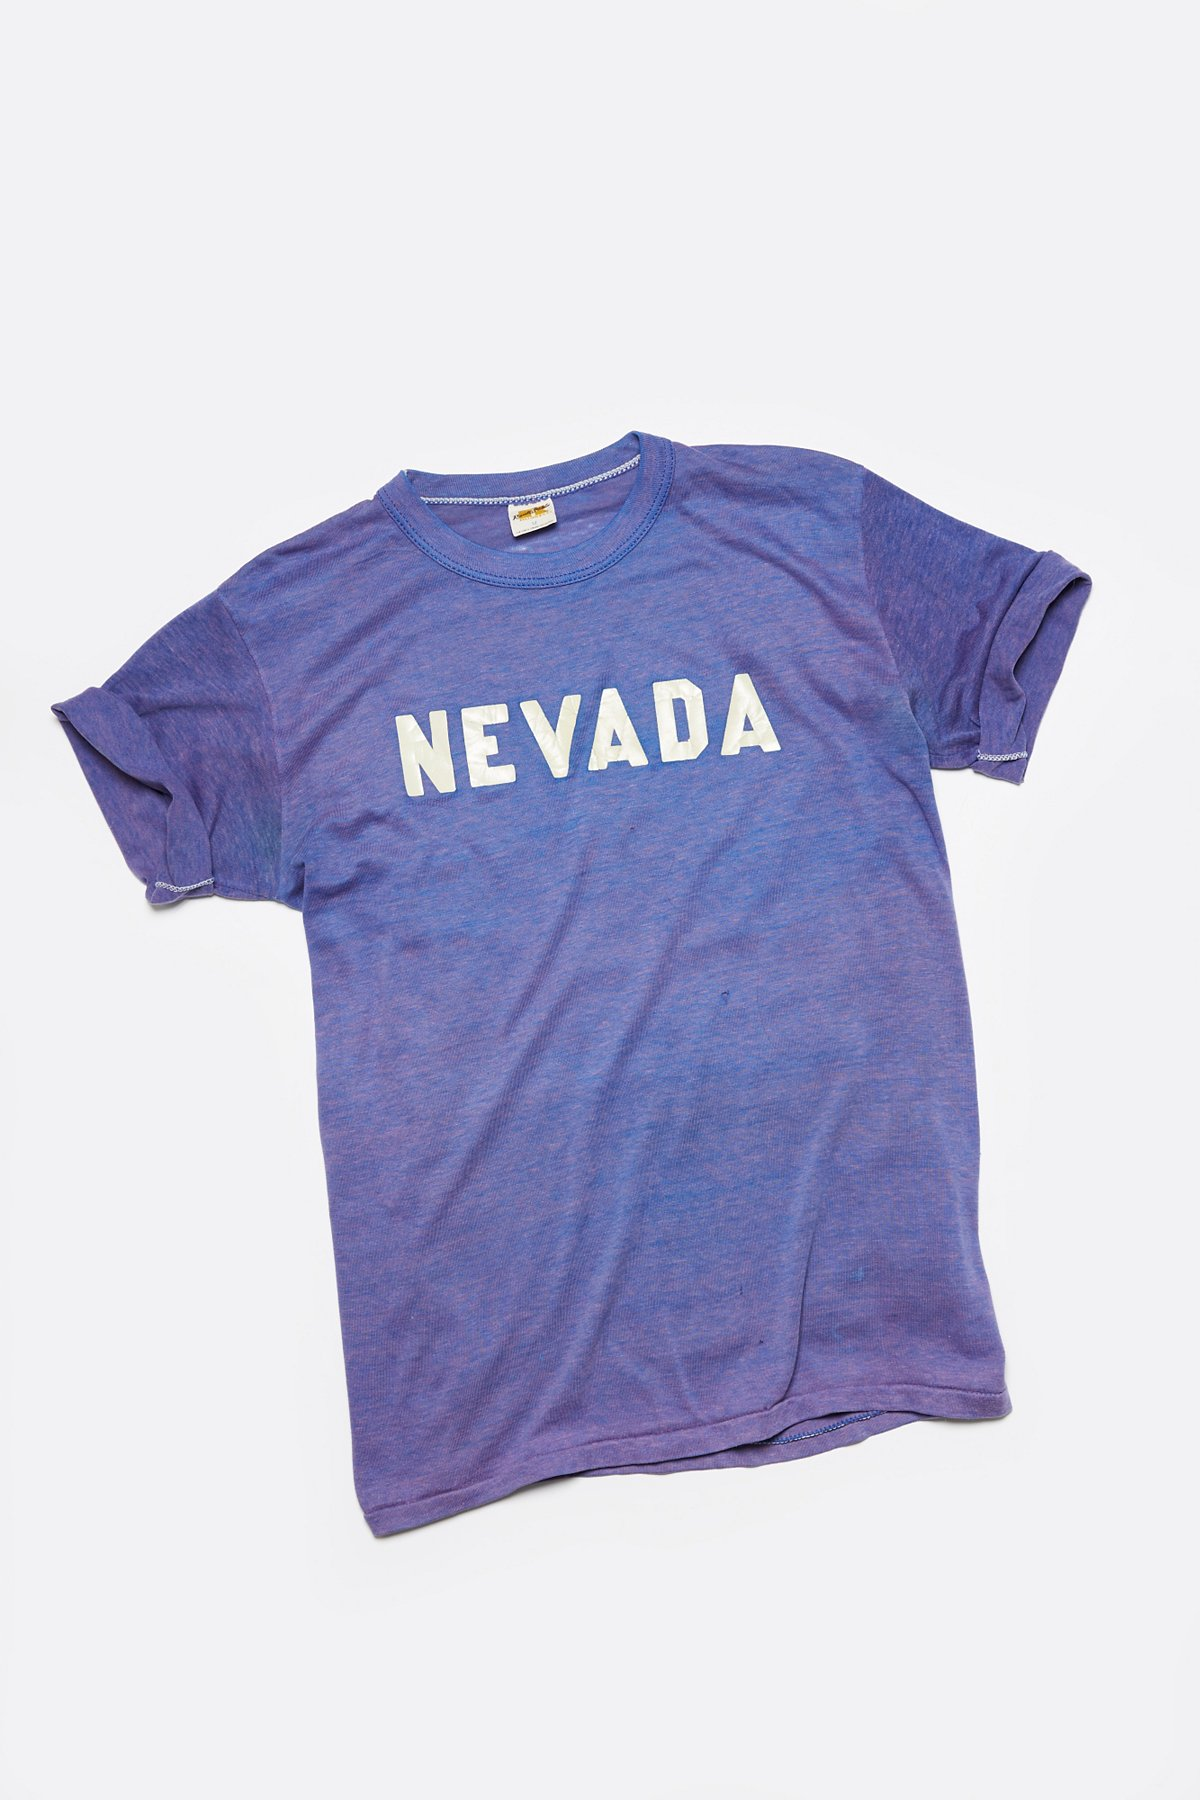 Vintage 1950s Washed Tee